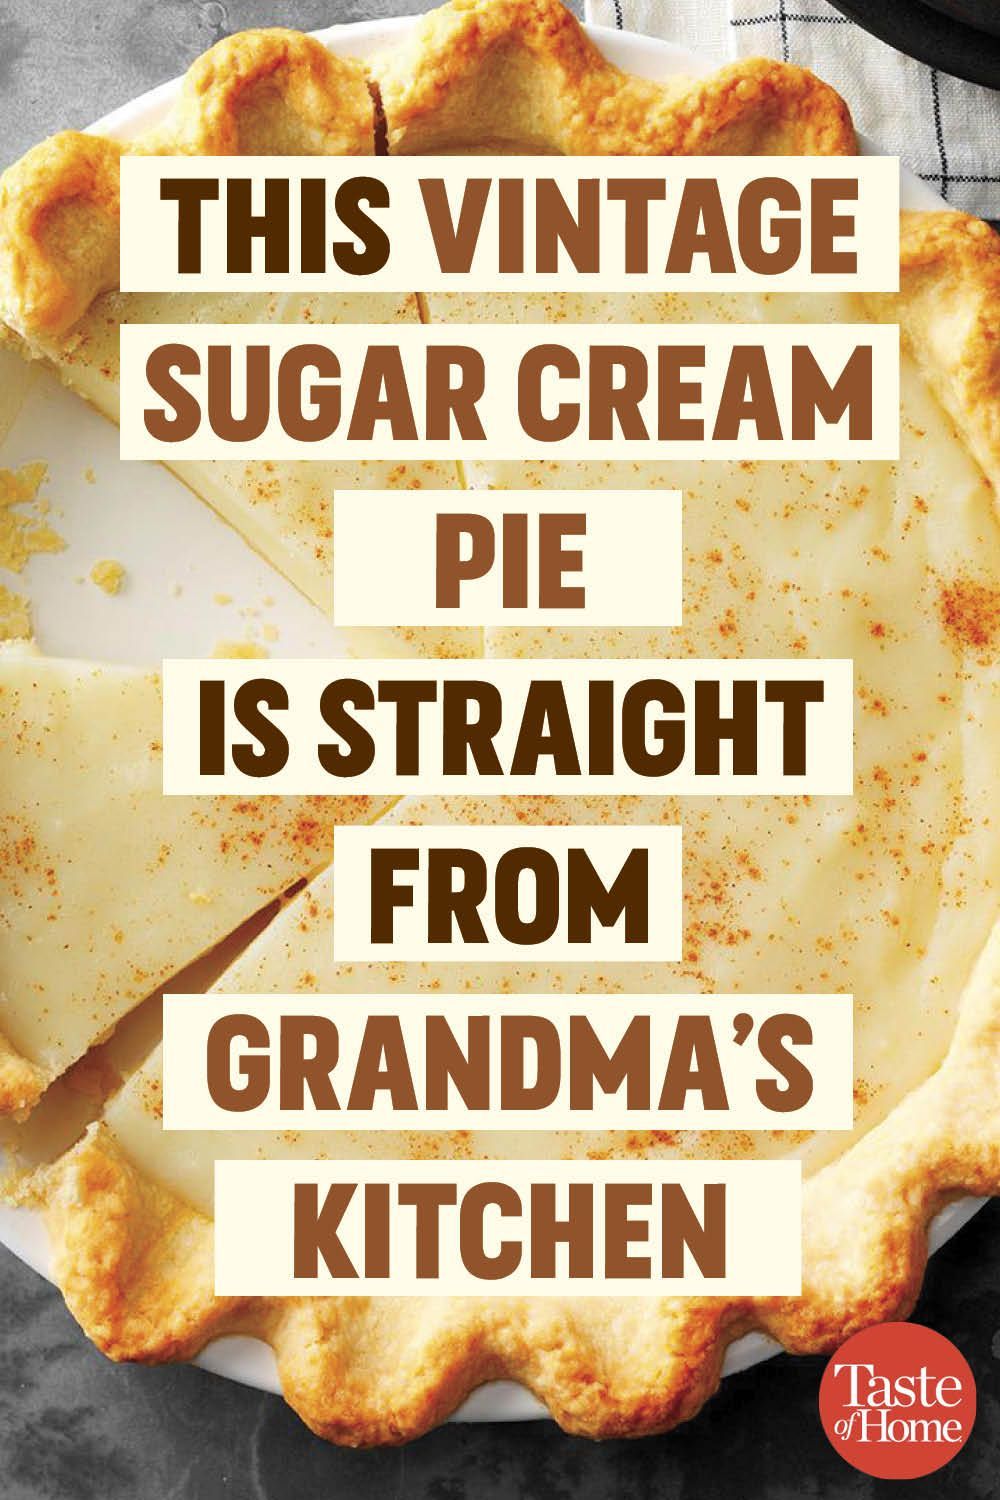 This Vintage Sugar Cream Pie Is Straight From Grandma's Kitchen #sugarcreampie